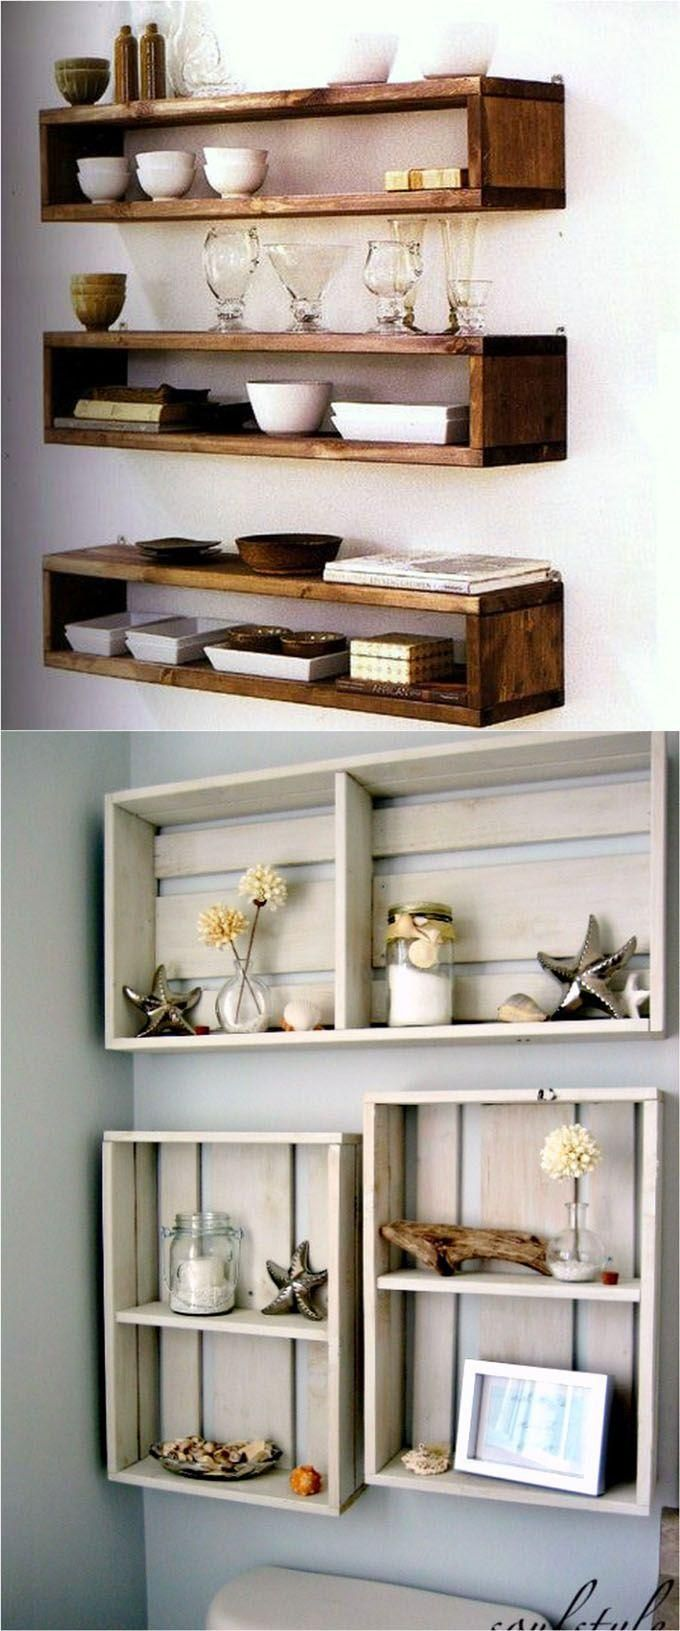 diy floating shelves plans new 16 easy and stylish diy floating rh pinterest com